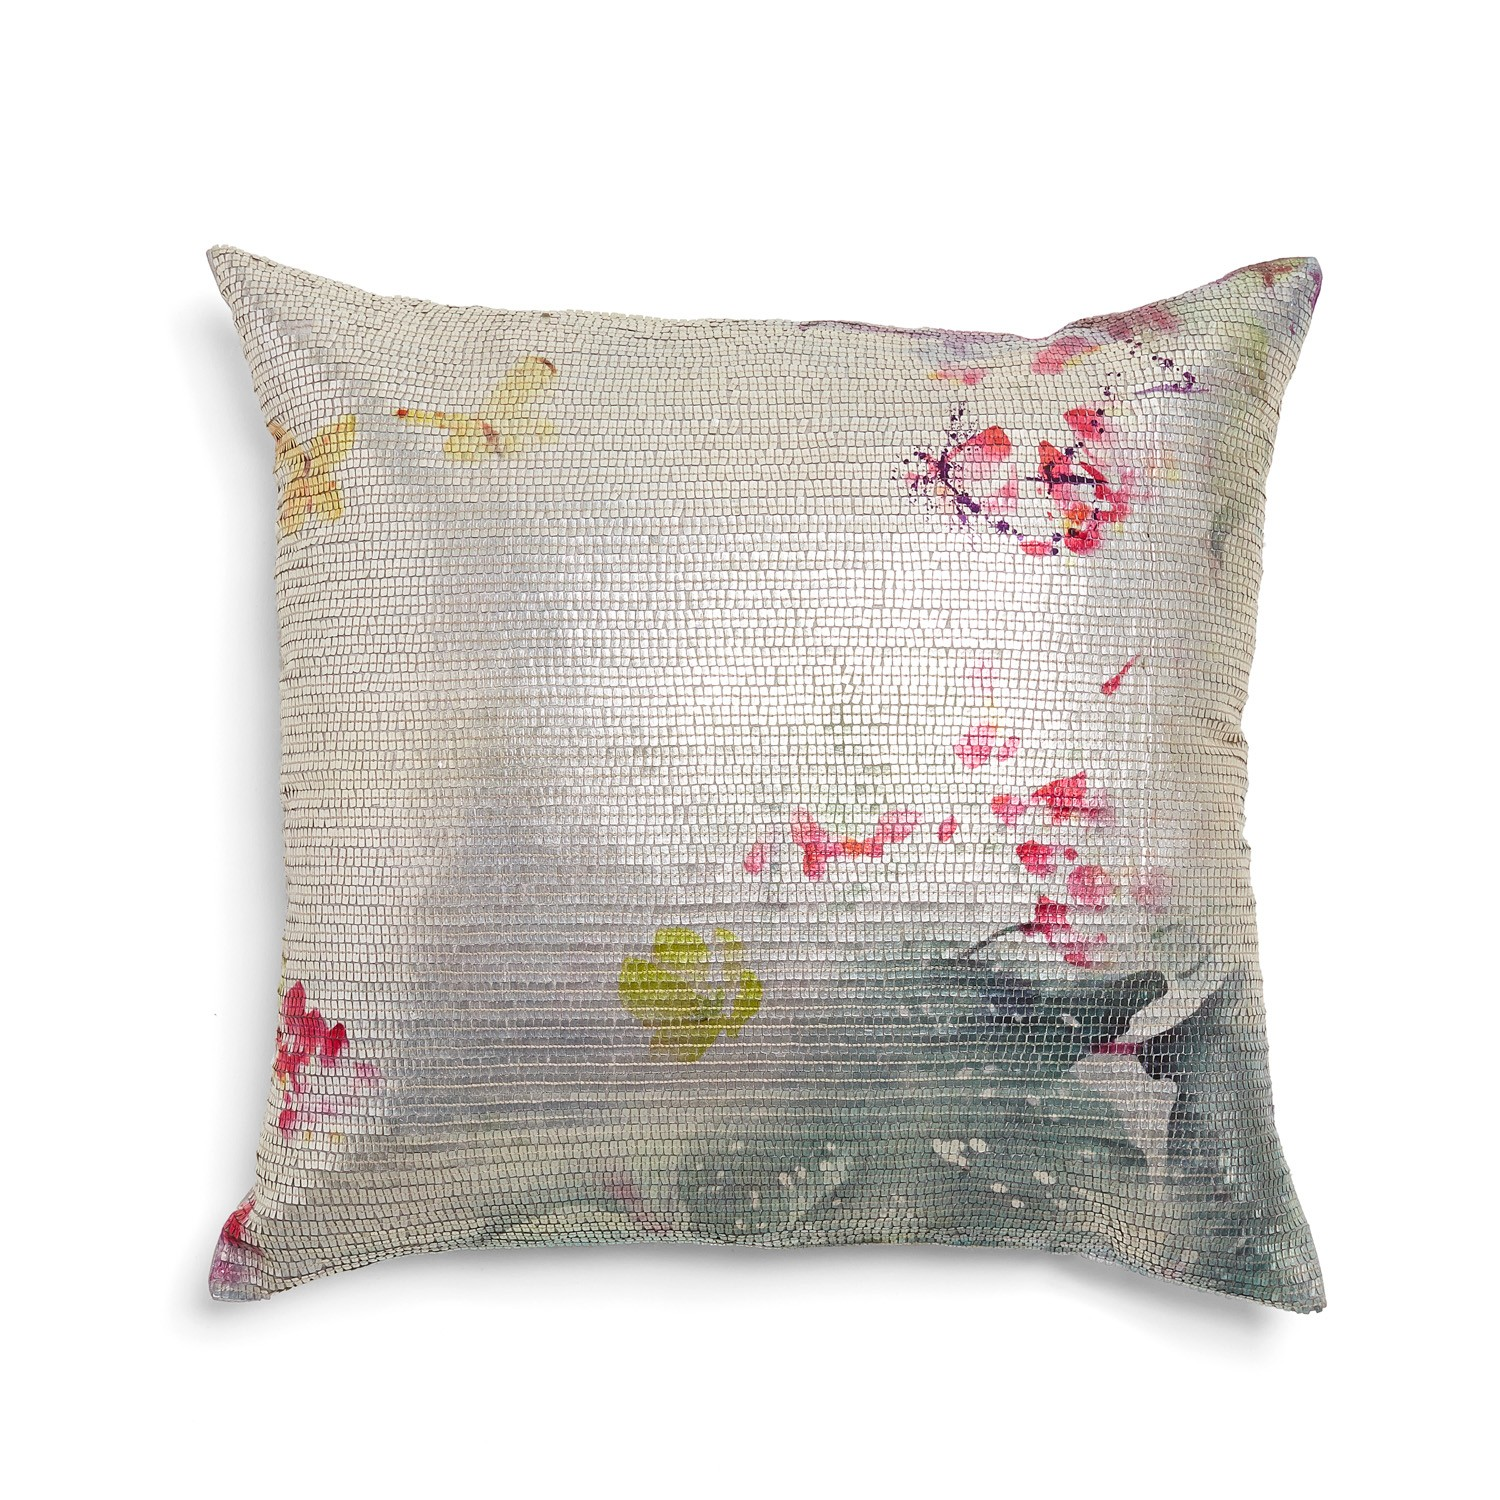 Add a bit of shimmery whimsy to your home! -- Aviva Stanoff Pink Lulu Mercury Pillow $250